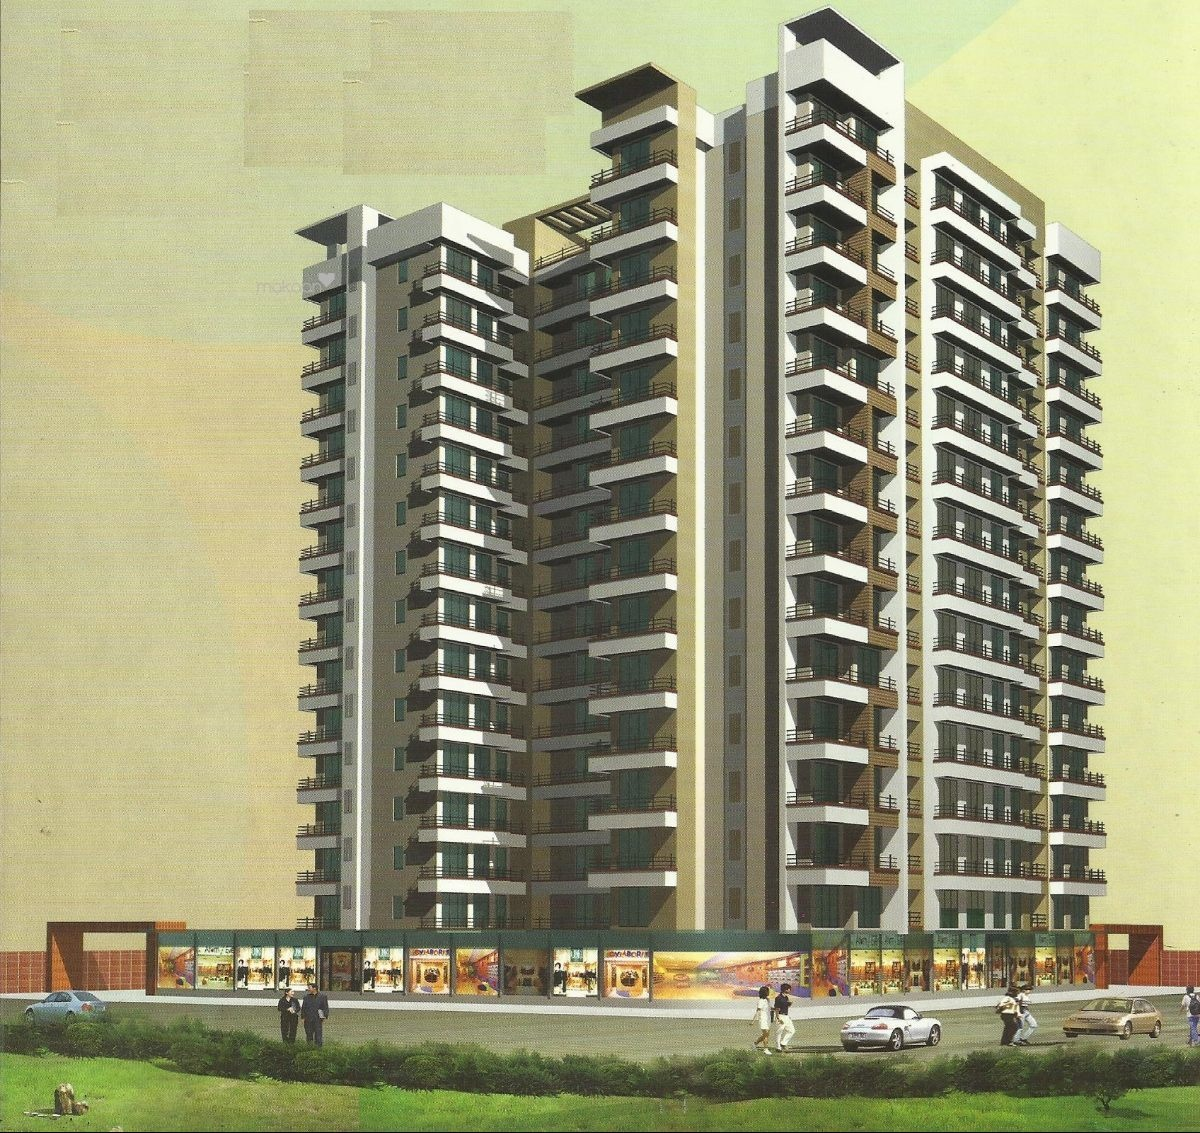 550 sq ft 1BHK 1BHK+1T (550 sq ft) + Study Room Property By Vijay Estate Agency In Project, Kharghar